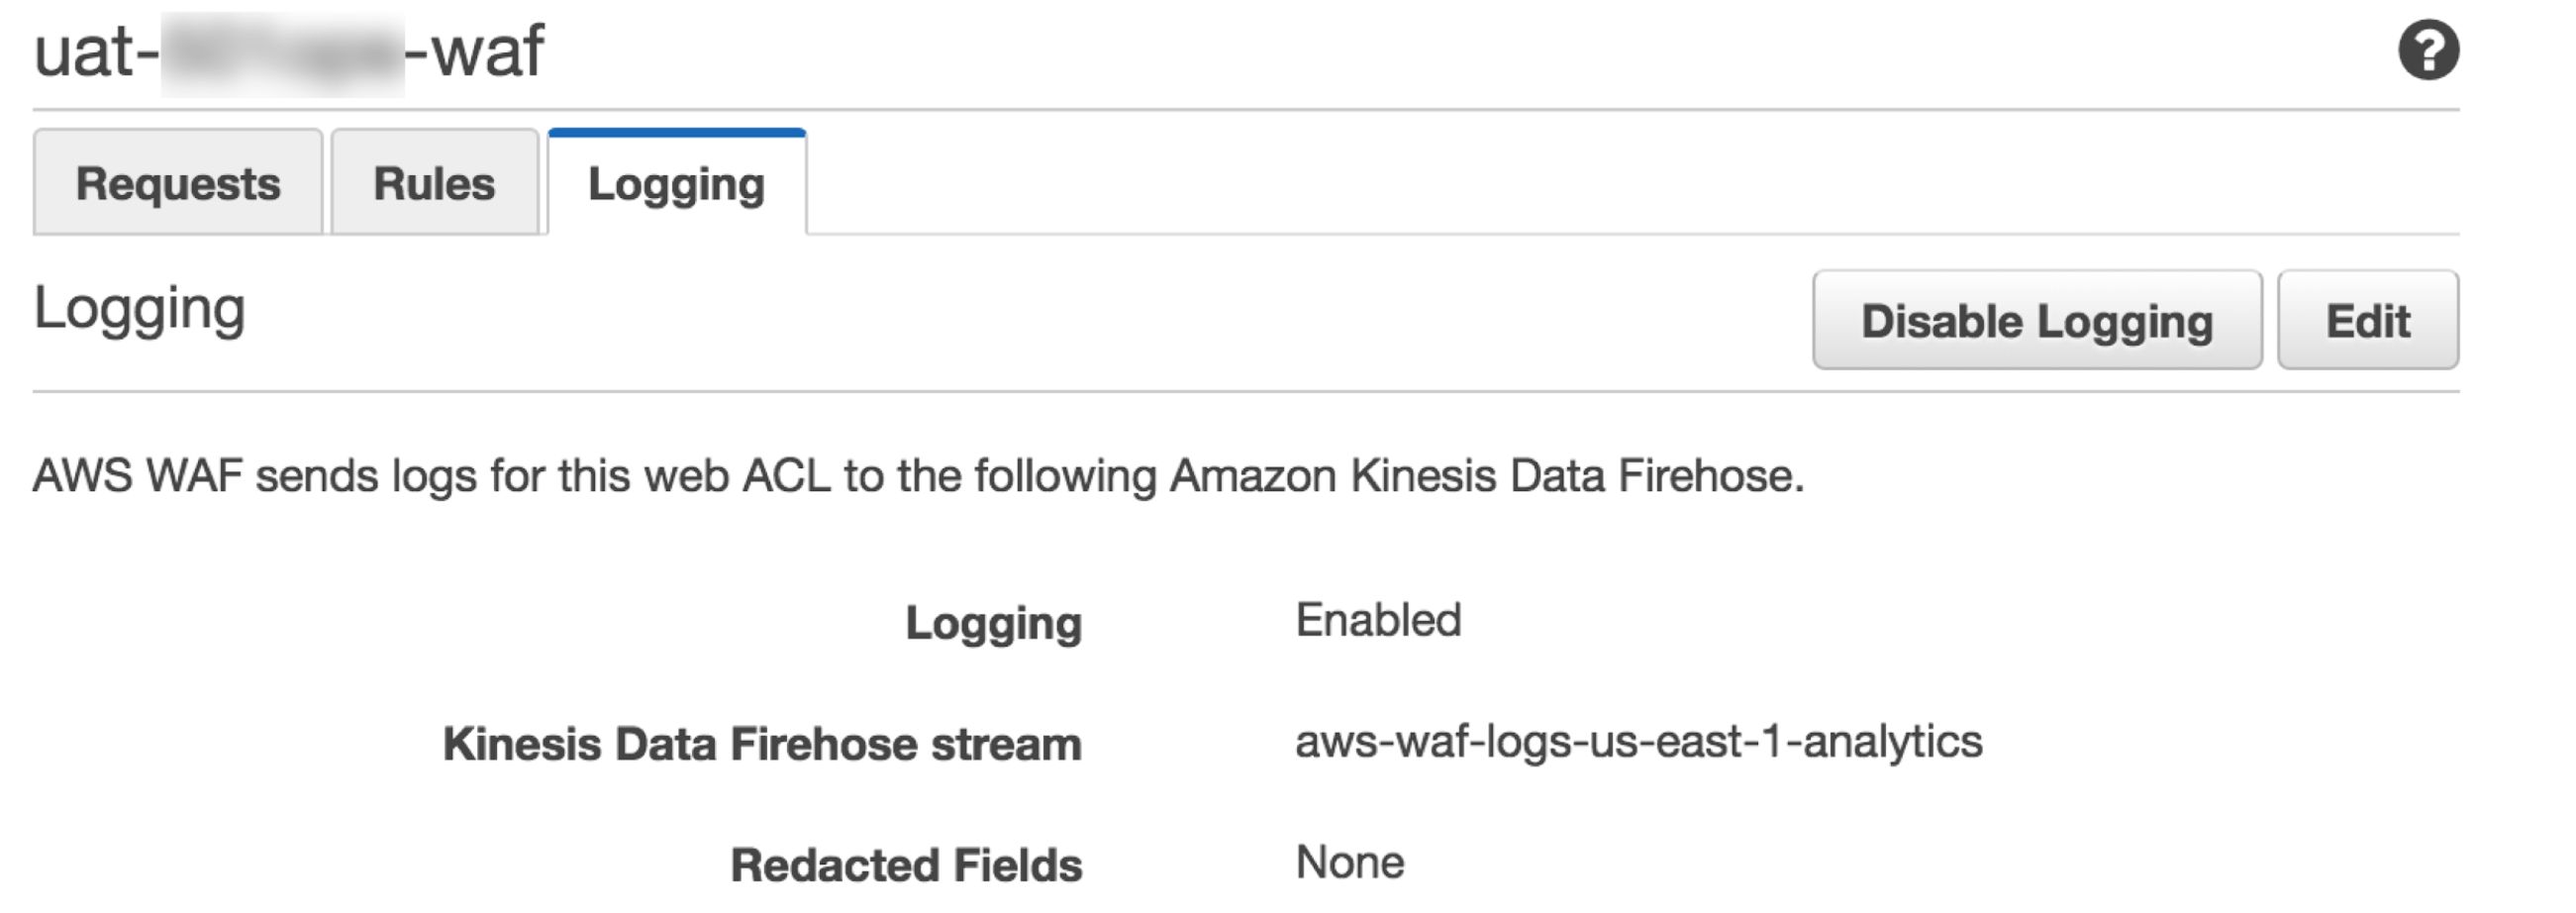 AMAZON KINESIS DATA FIREHOSE FOR DETAIL LOGGING IN AWS WAF